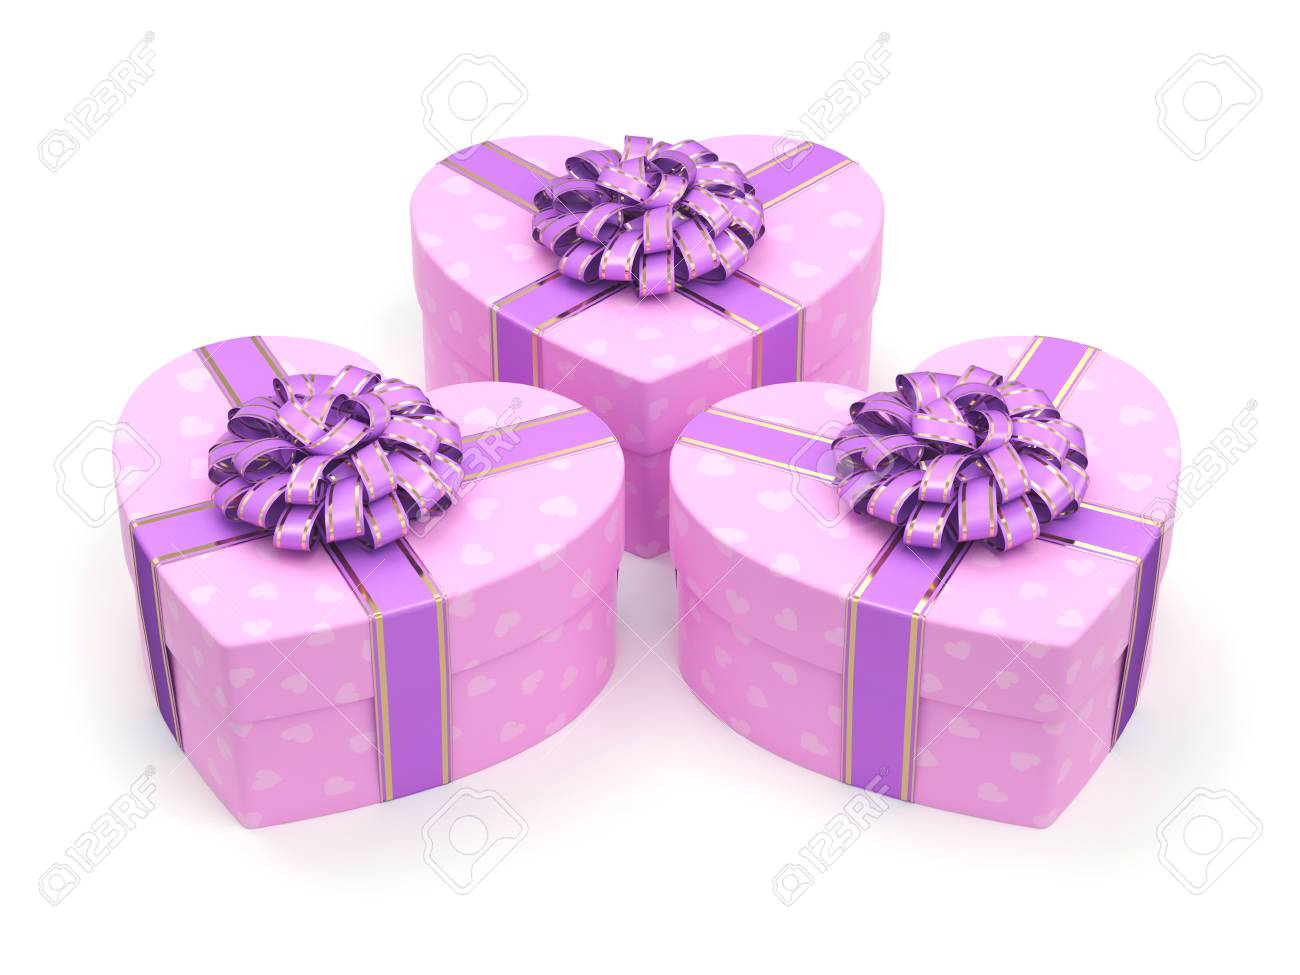 3D Rendering Pink Boxes With Heart Shaped Purple Ribbon Stock Photo ...